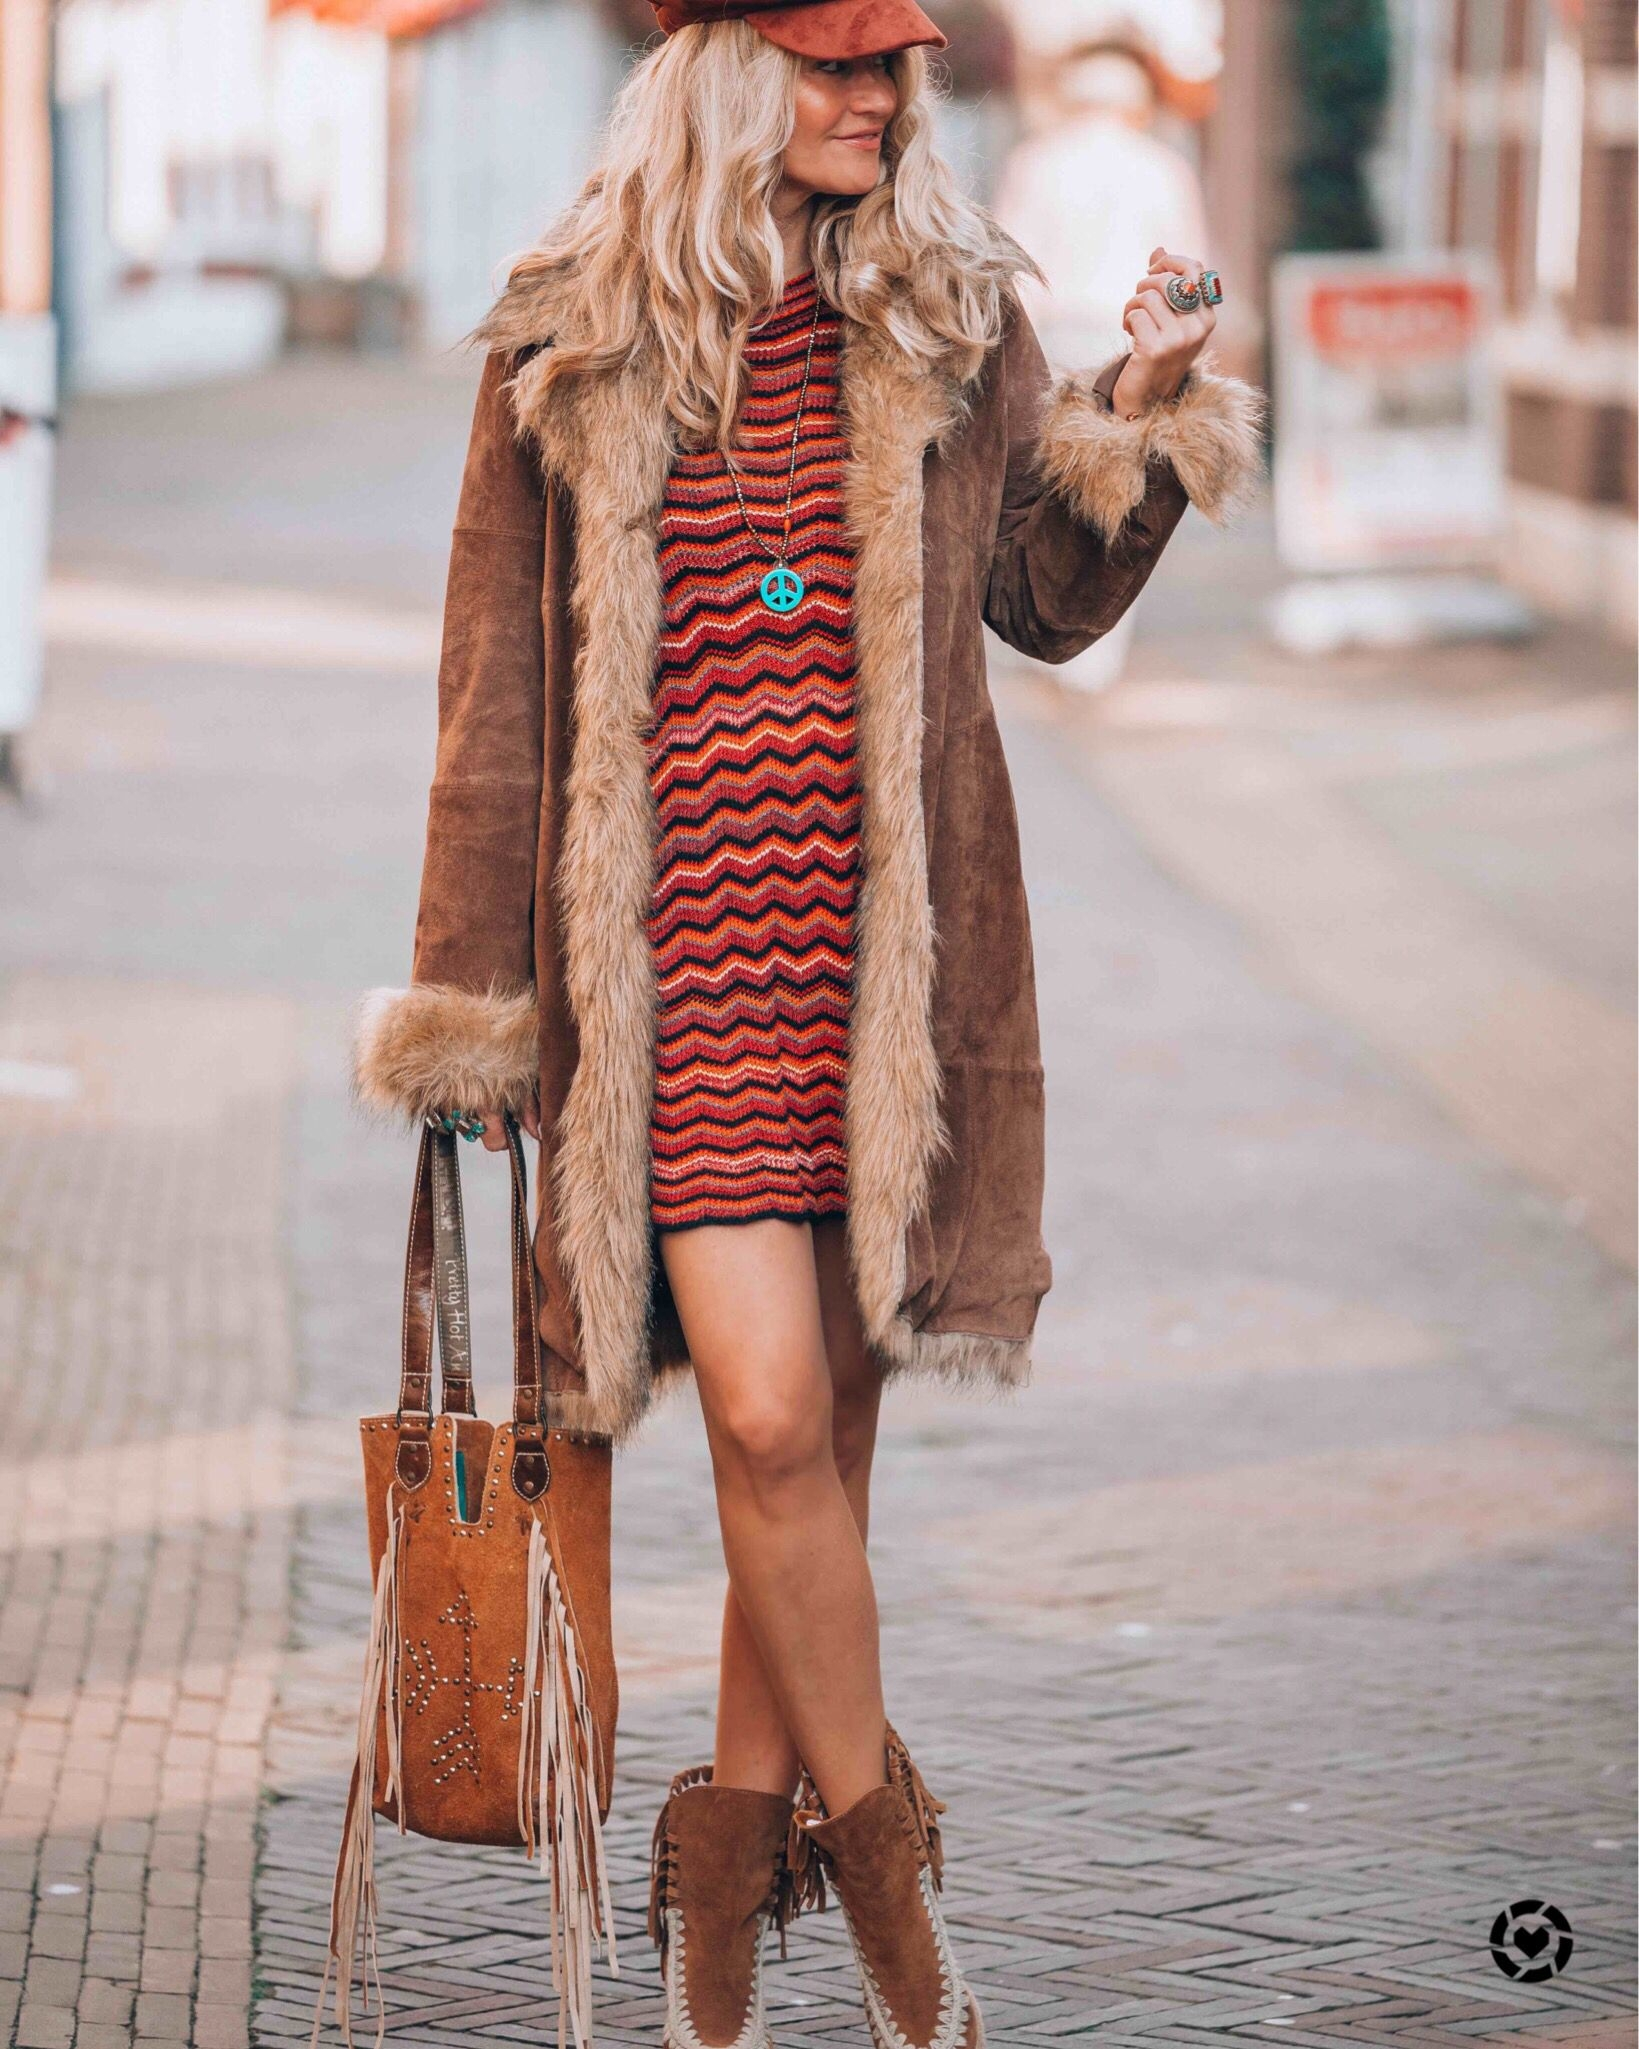 Extraordinary What is Bohemian Style On Stupendous Autumn Look Bohemian Style On What is Bohemian Style